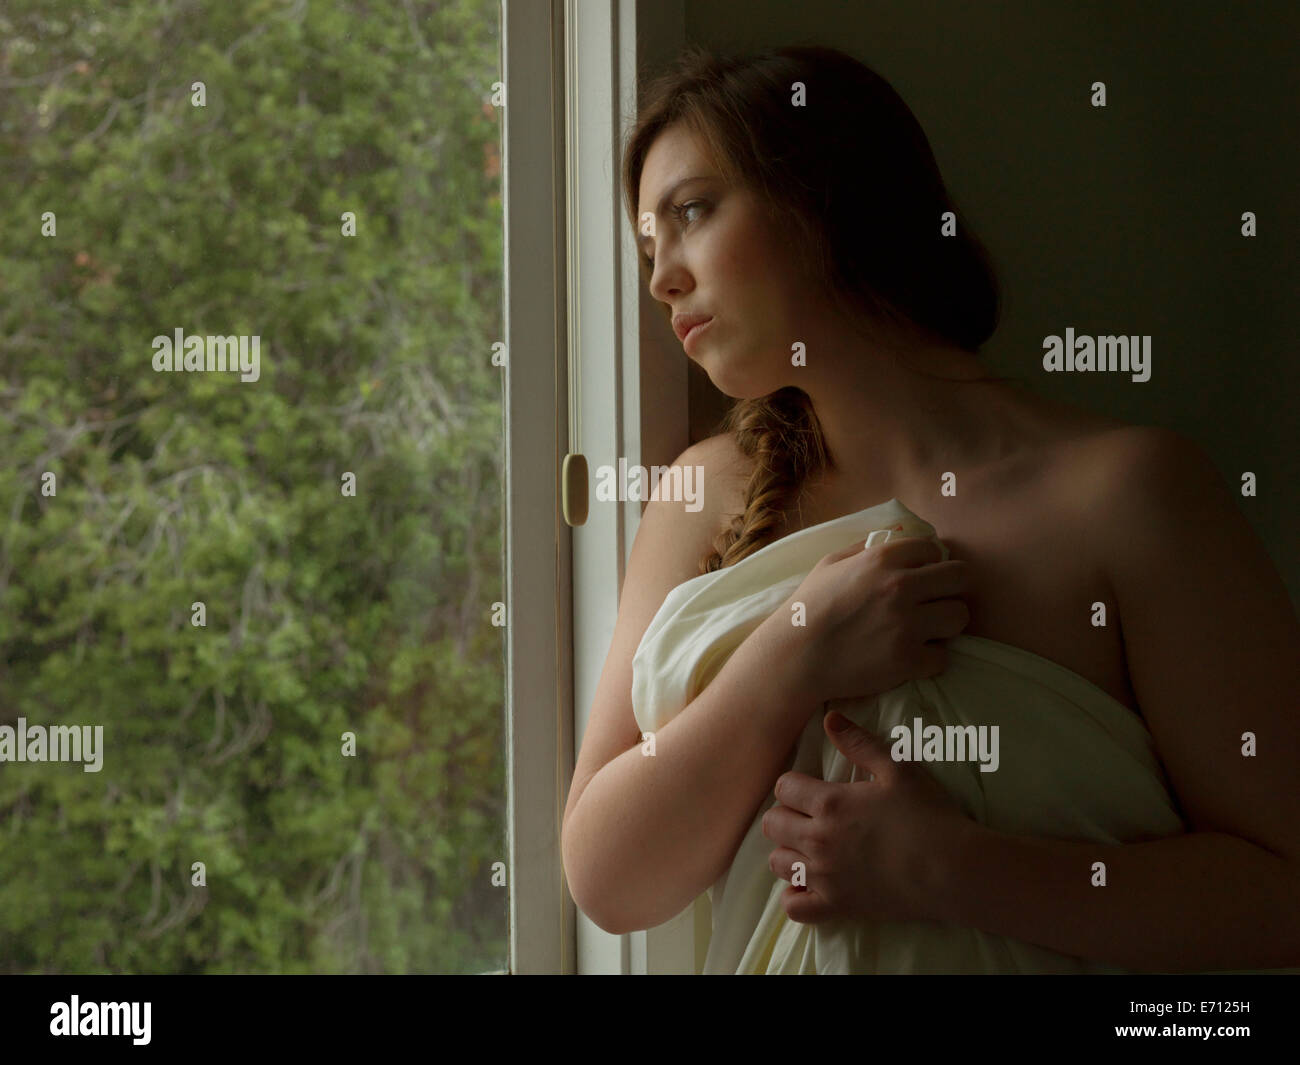 Sad young woman gazing out of hotel bedroom window whilst wrapped in sheet - Stock Image